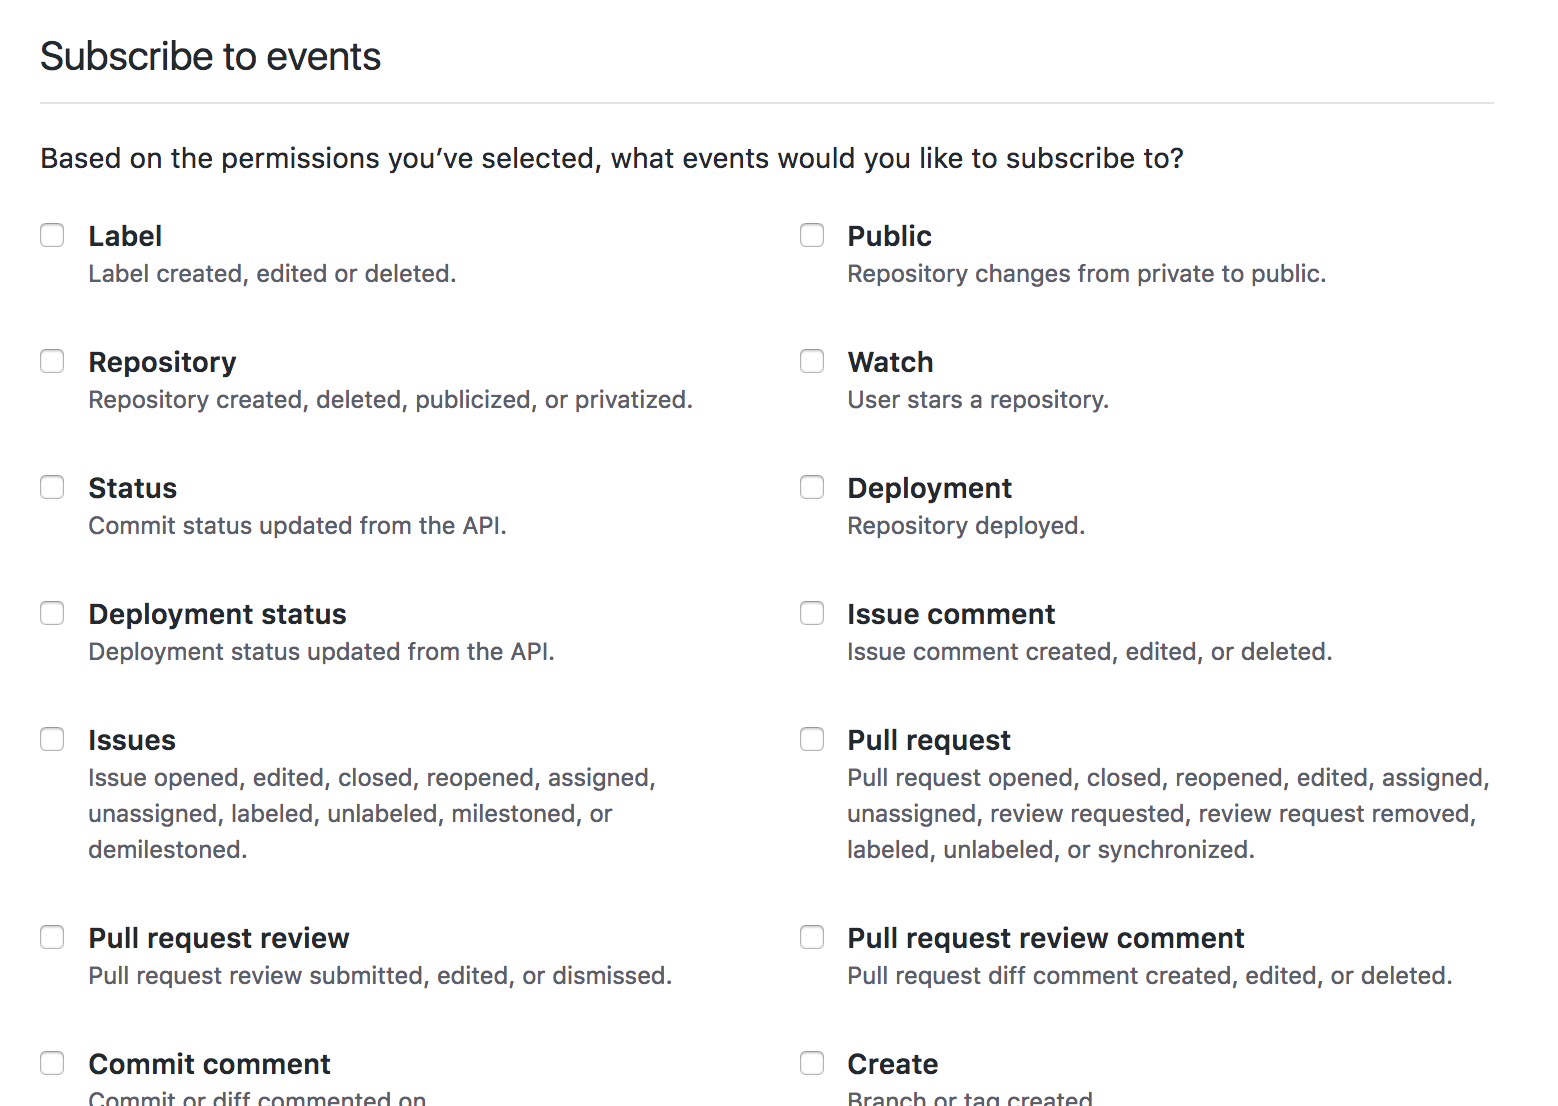 Permissions selections for subscribing your GitHub App to events